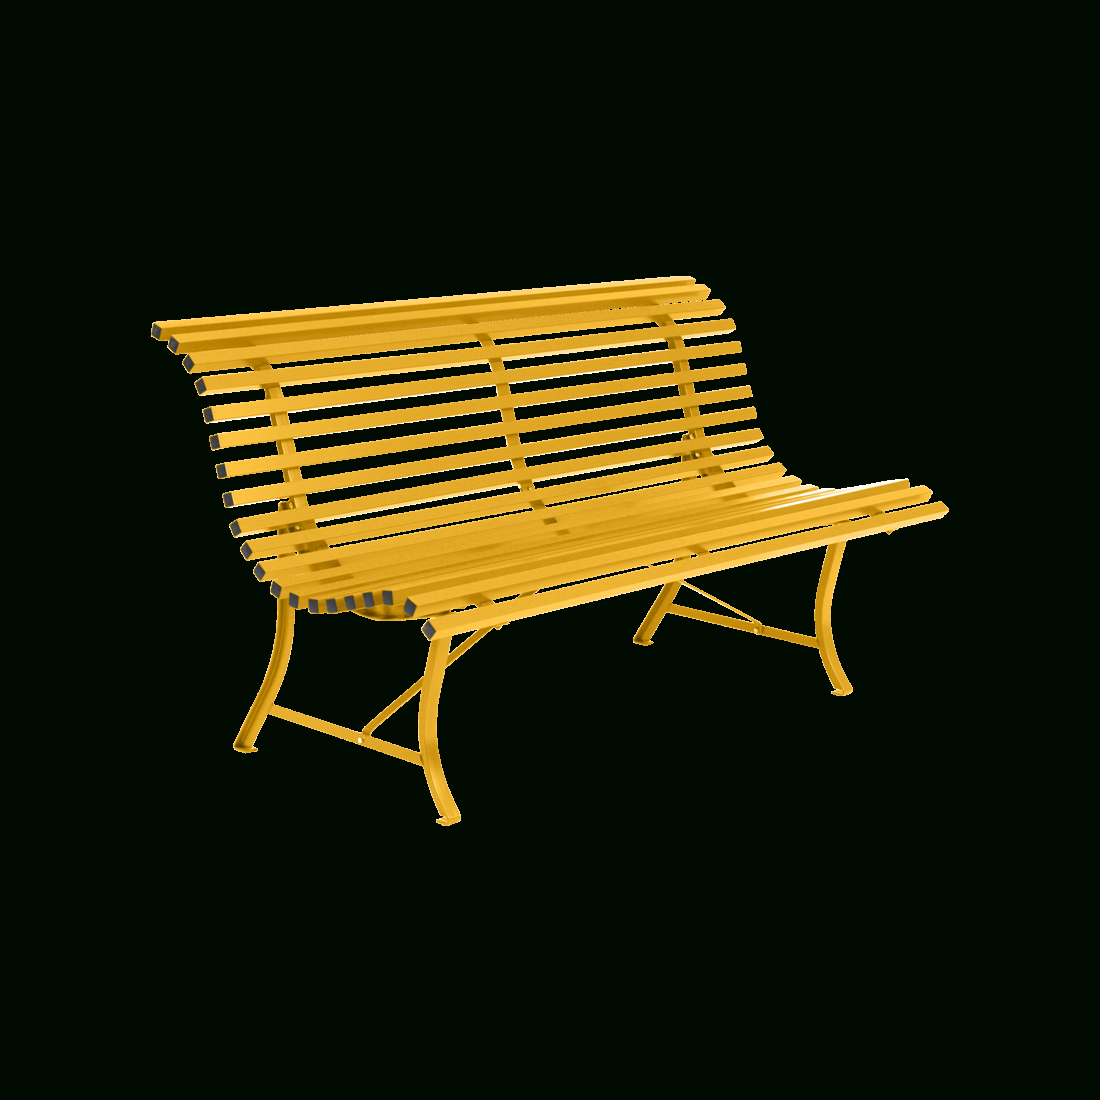 150 Cm Louisiane Bench, For Outdoor Living Space | Norrfjärd ... à Banc De Jardin Louisiane